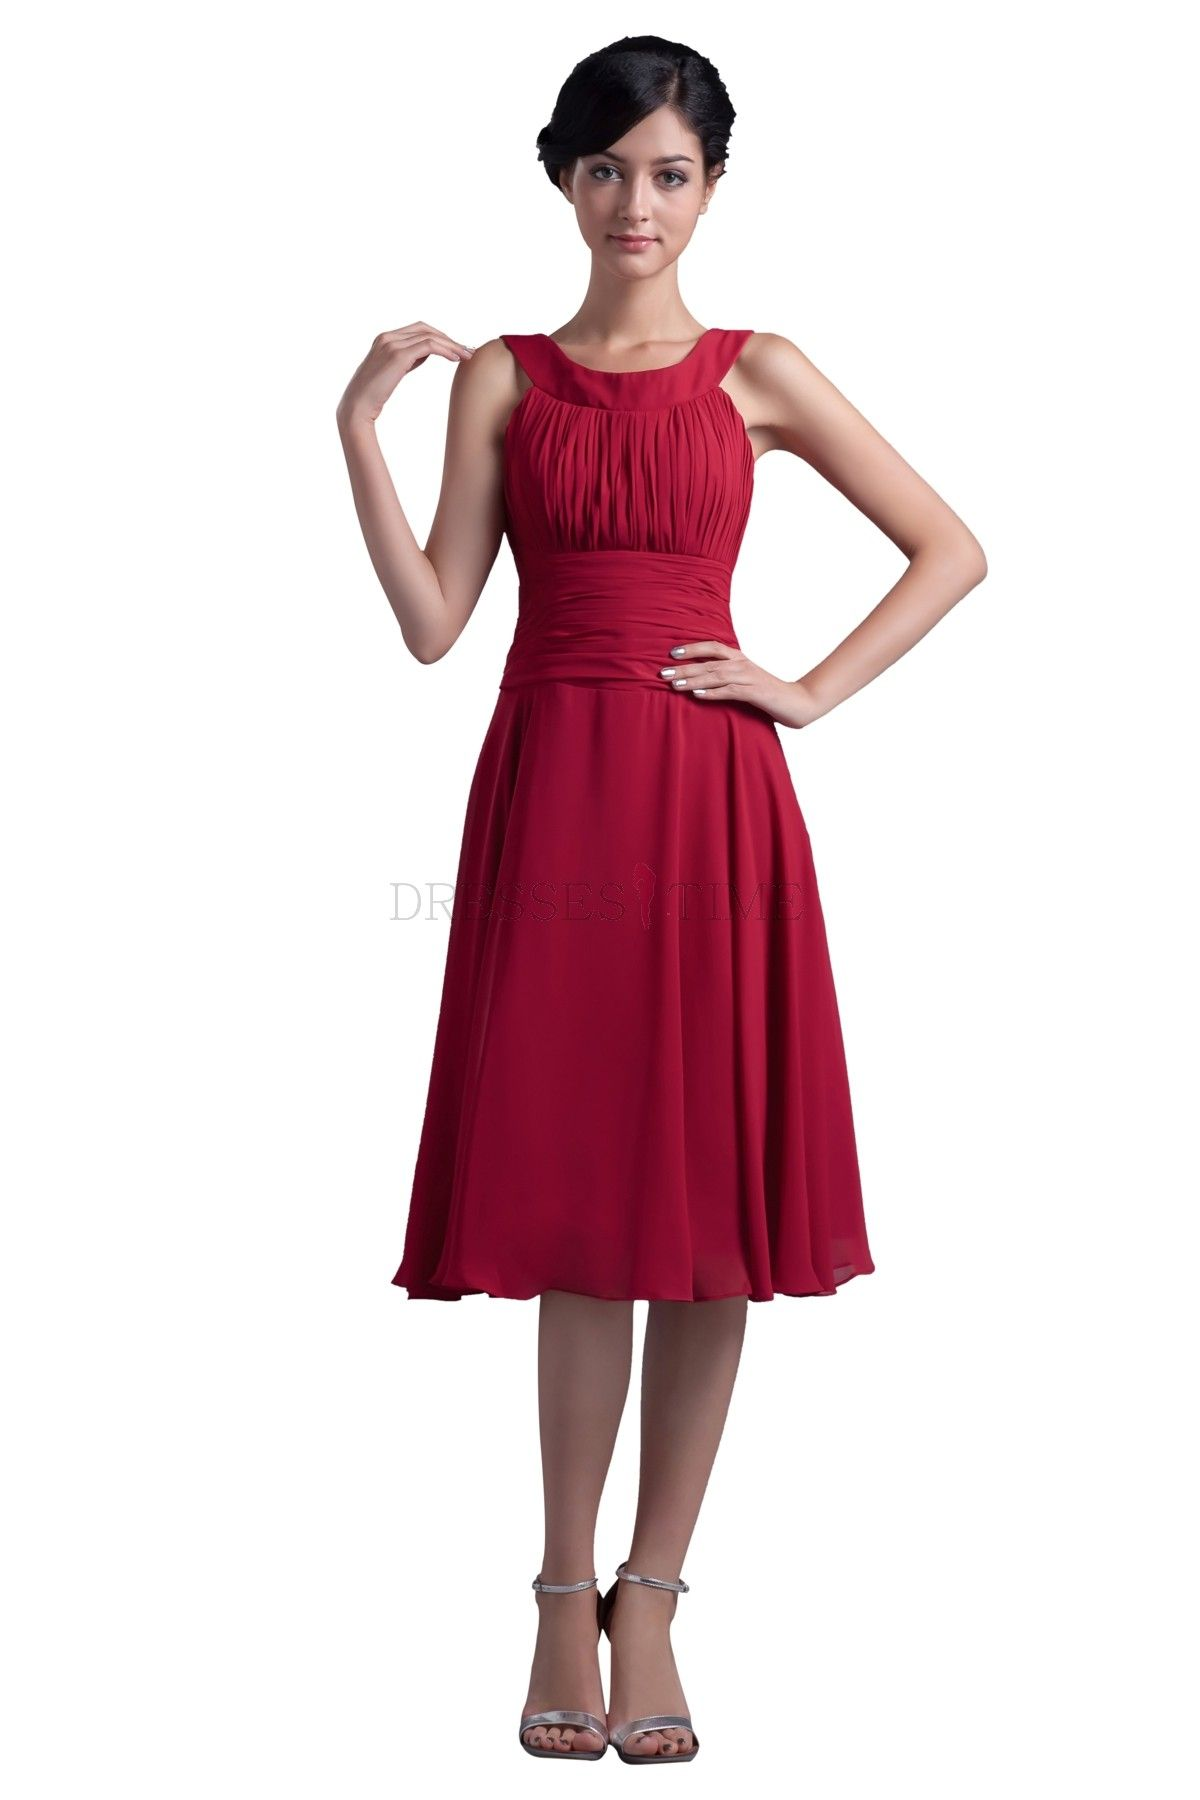 Modest dresses for women below the knee knee length wine chiffon modest dresses for women below the knee knee length wine chiffon bridesmaid dress wedding ombrellifo Images